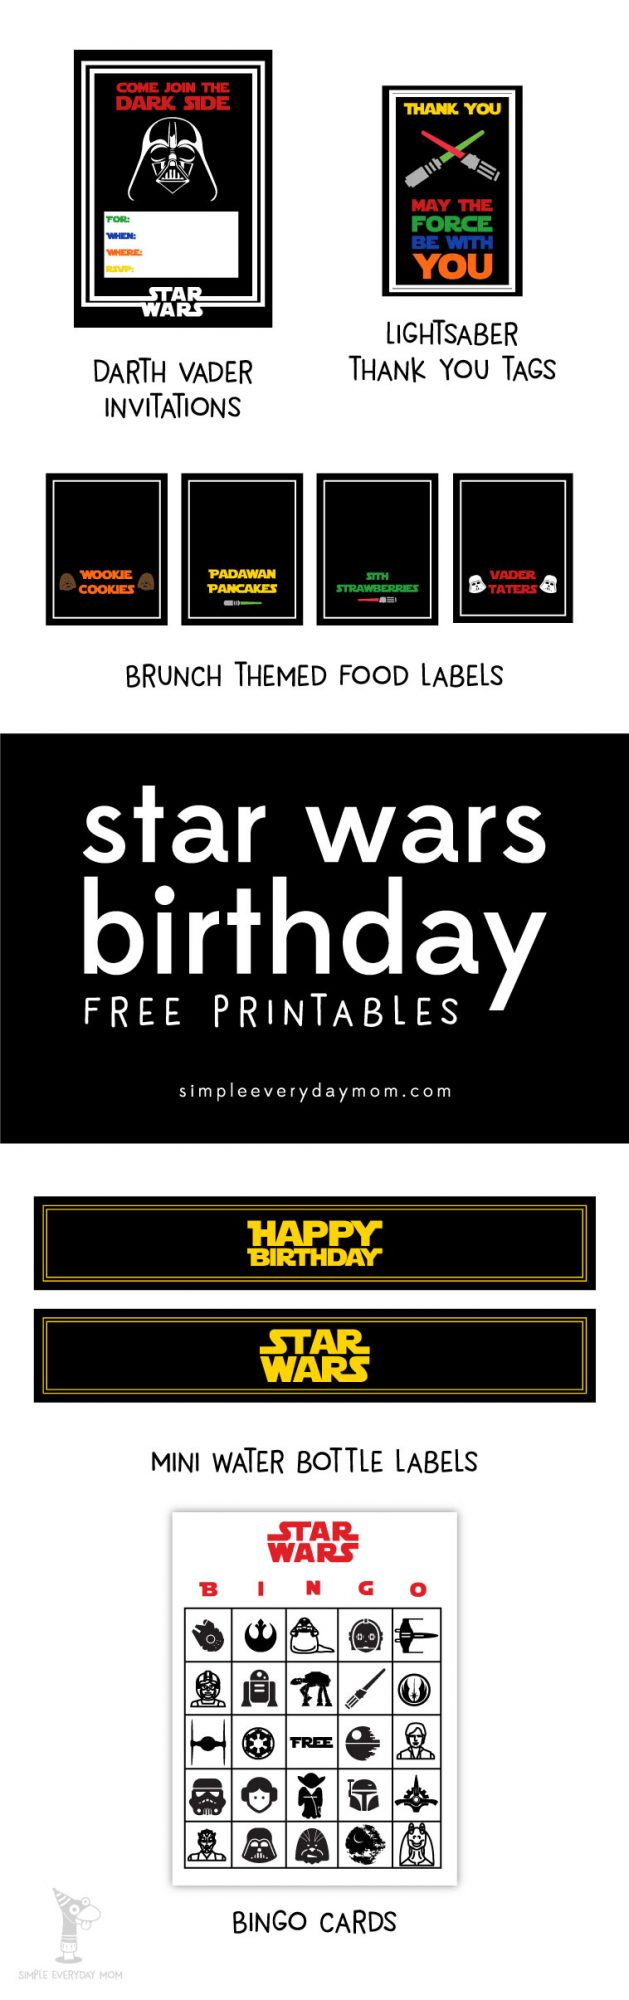 graphic relating to Star Wars Birthday Invitations Printable called Totally free Star Wars Bash Printables: A No-Pressure Path toward a